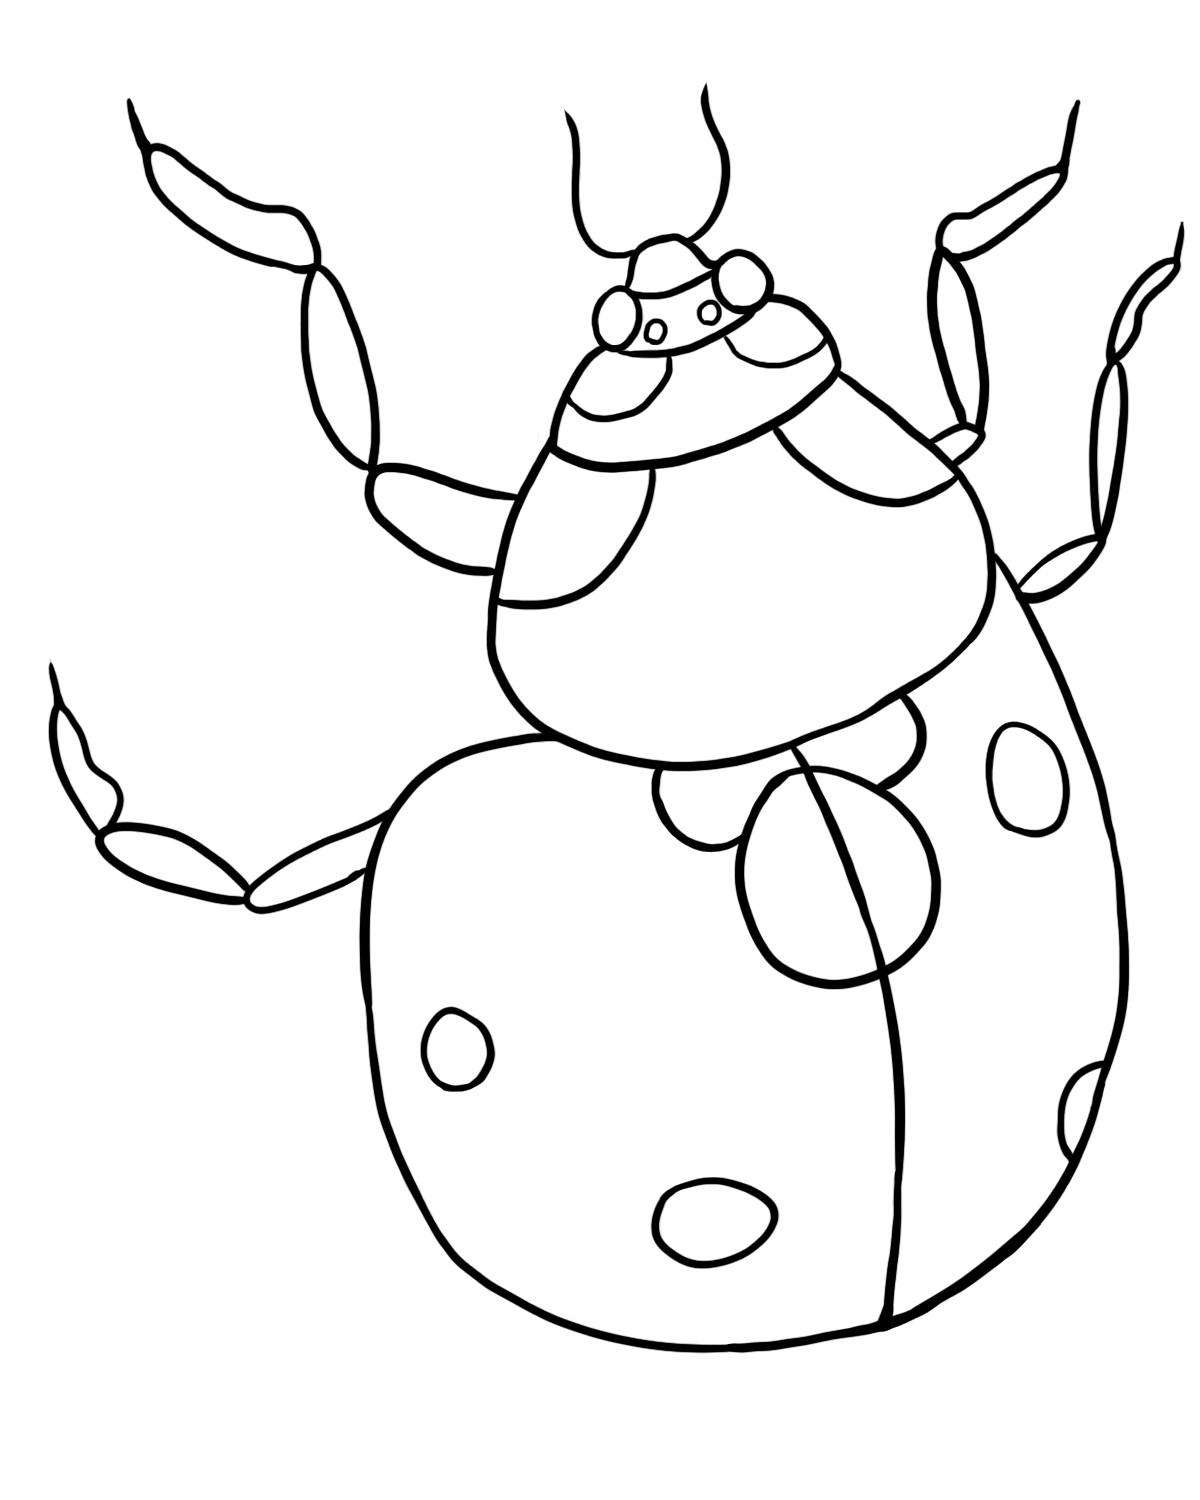 ladybug coloring images ladybug drawing pictures at getdrawings free download ladybug images coloring